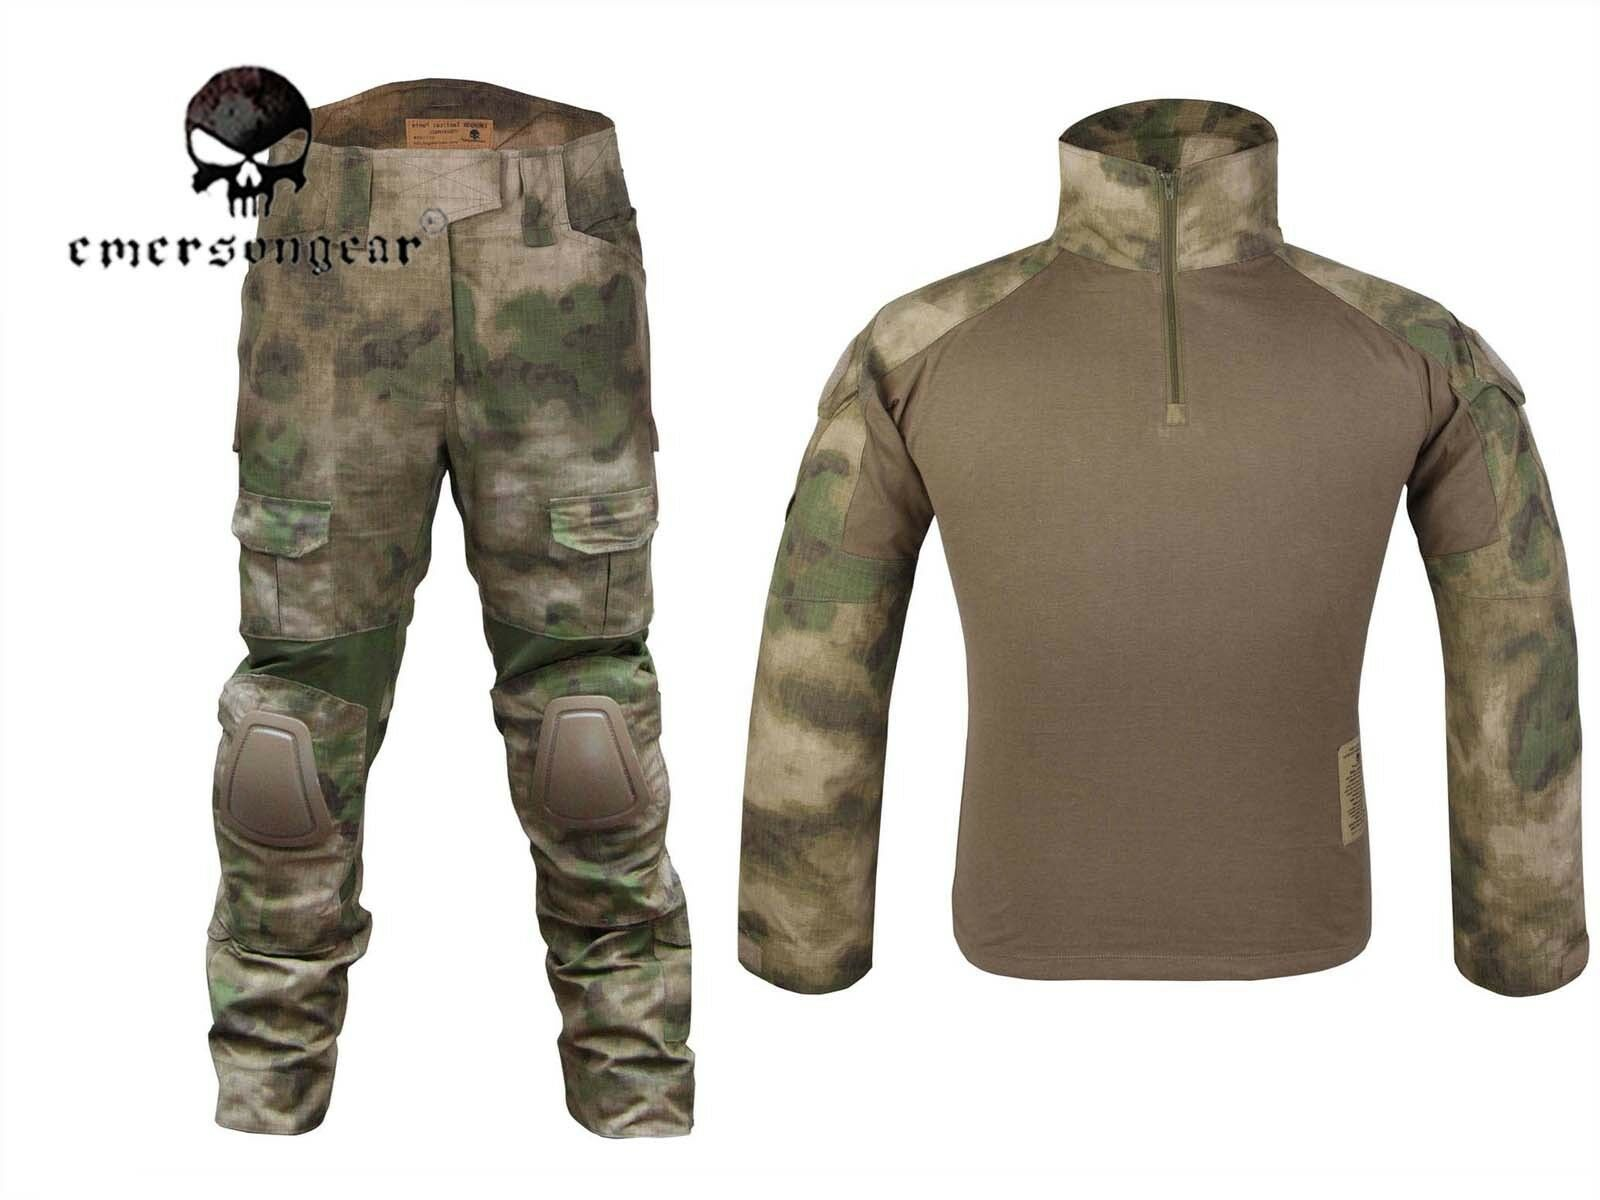 Emerson Gen2 Cype Style Combat Uniform  Tactical Hunting Uniform bdu AT-FG  low price